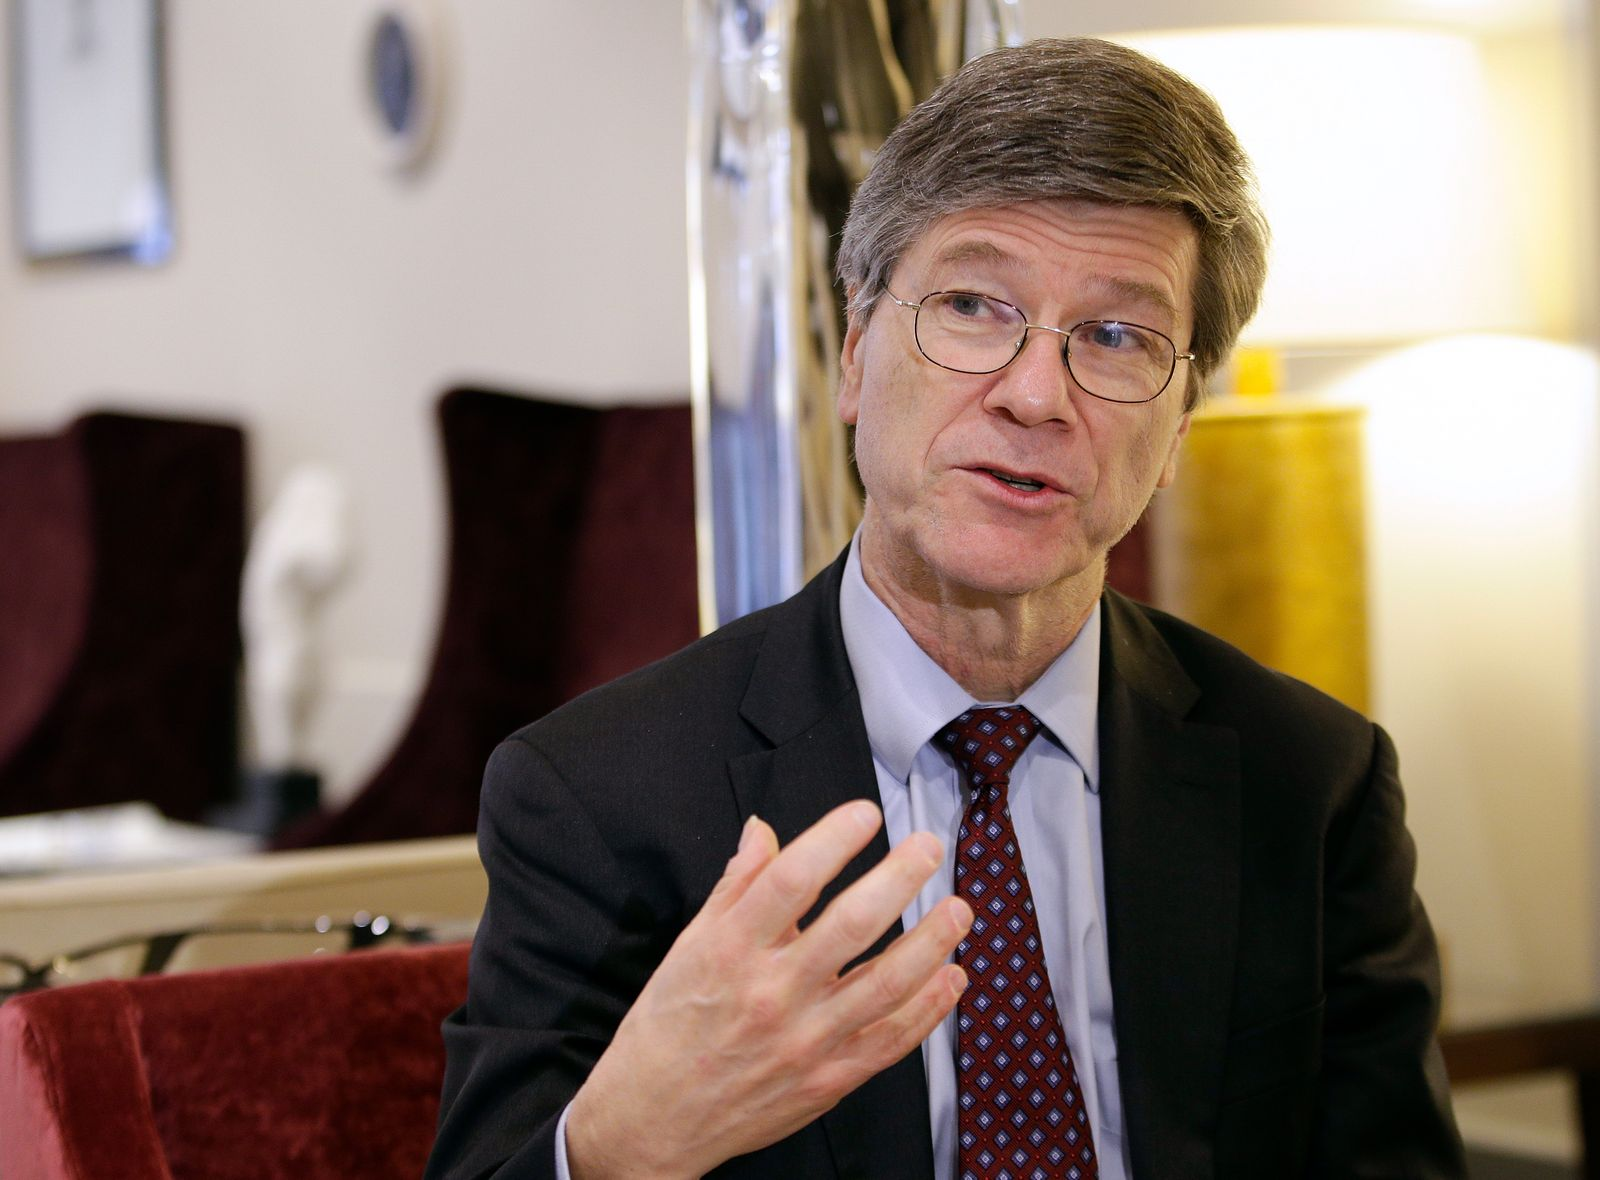 U.S. economist Sachs speaks during an interview with Reuters in Rome